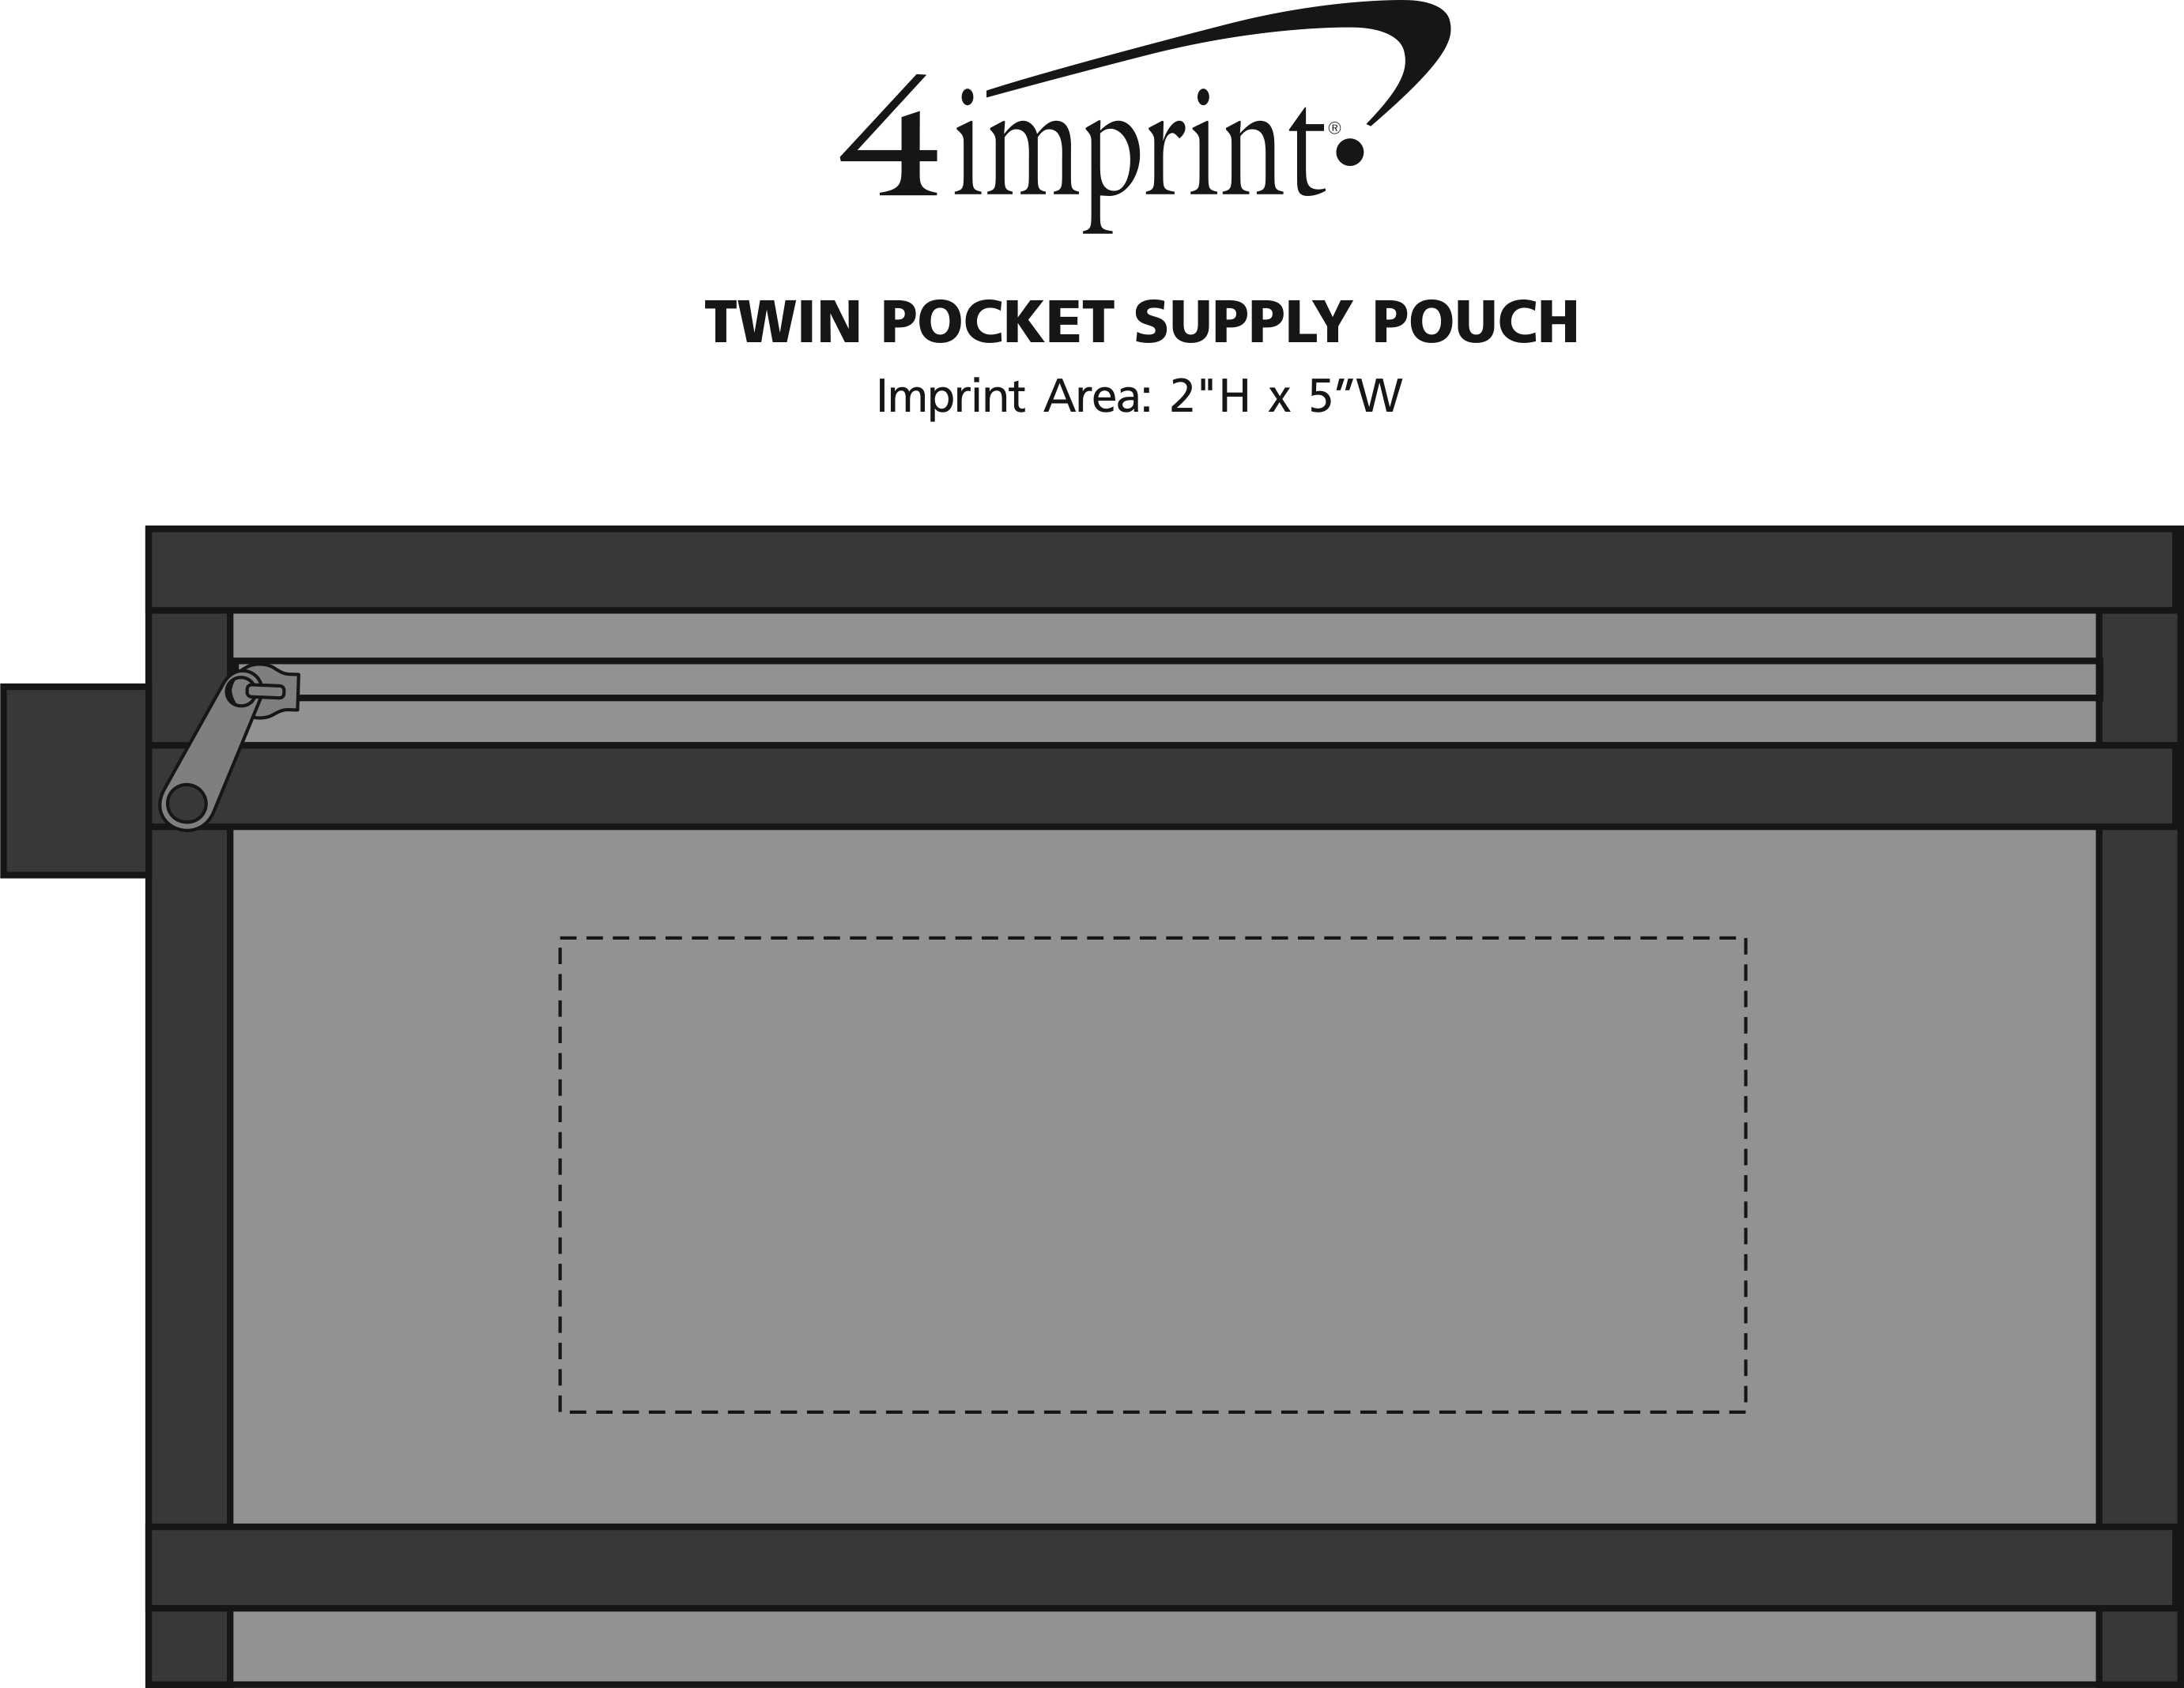 Imprint Area of Twin Pocket Supply Pouch